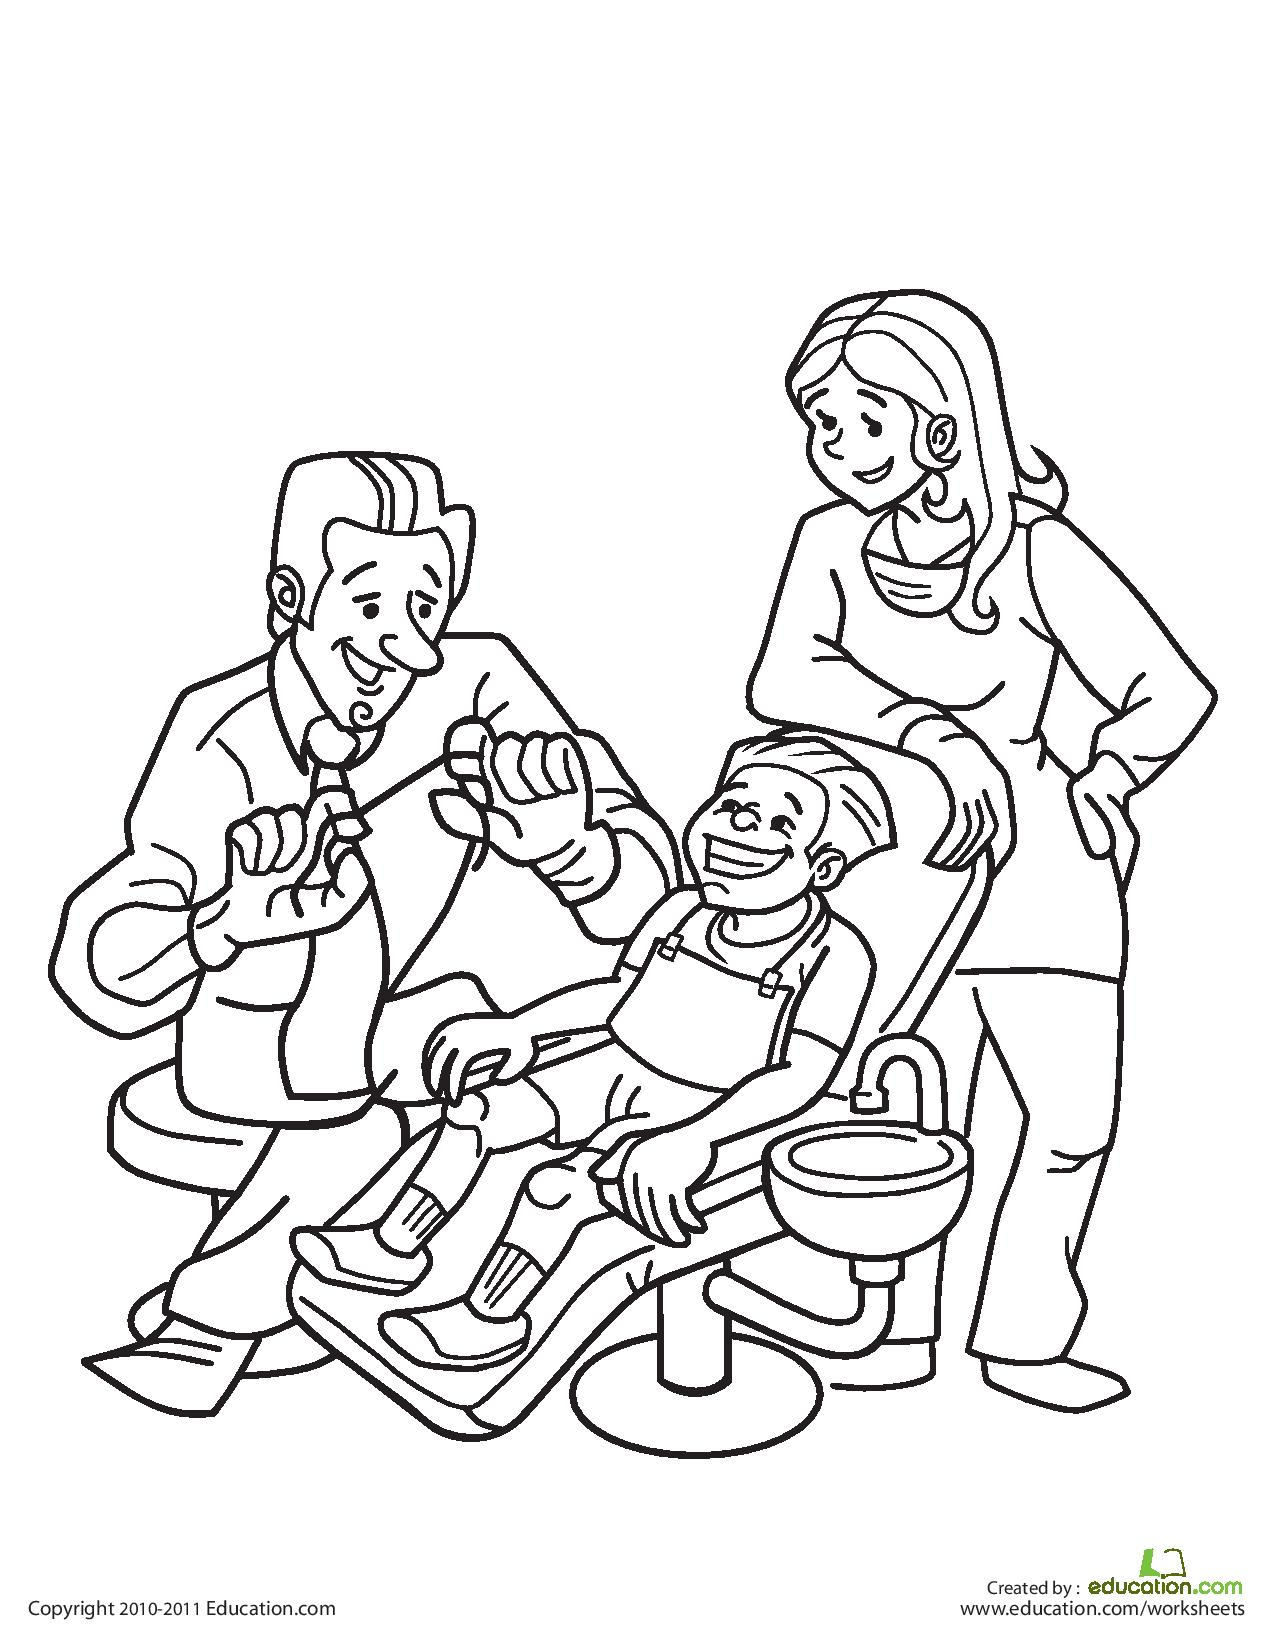 Free Printable Dental Coloring Pages at GetDrawings.com | Free for ...